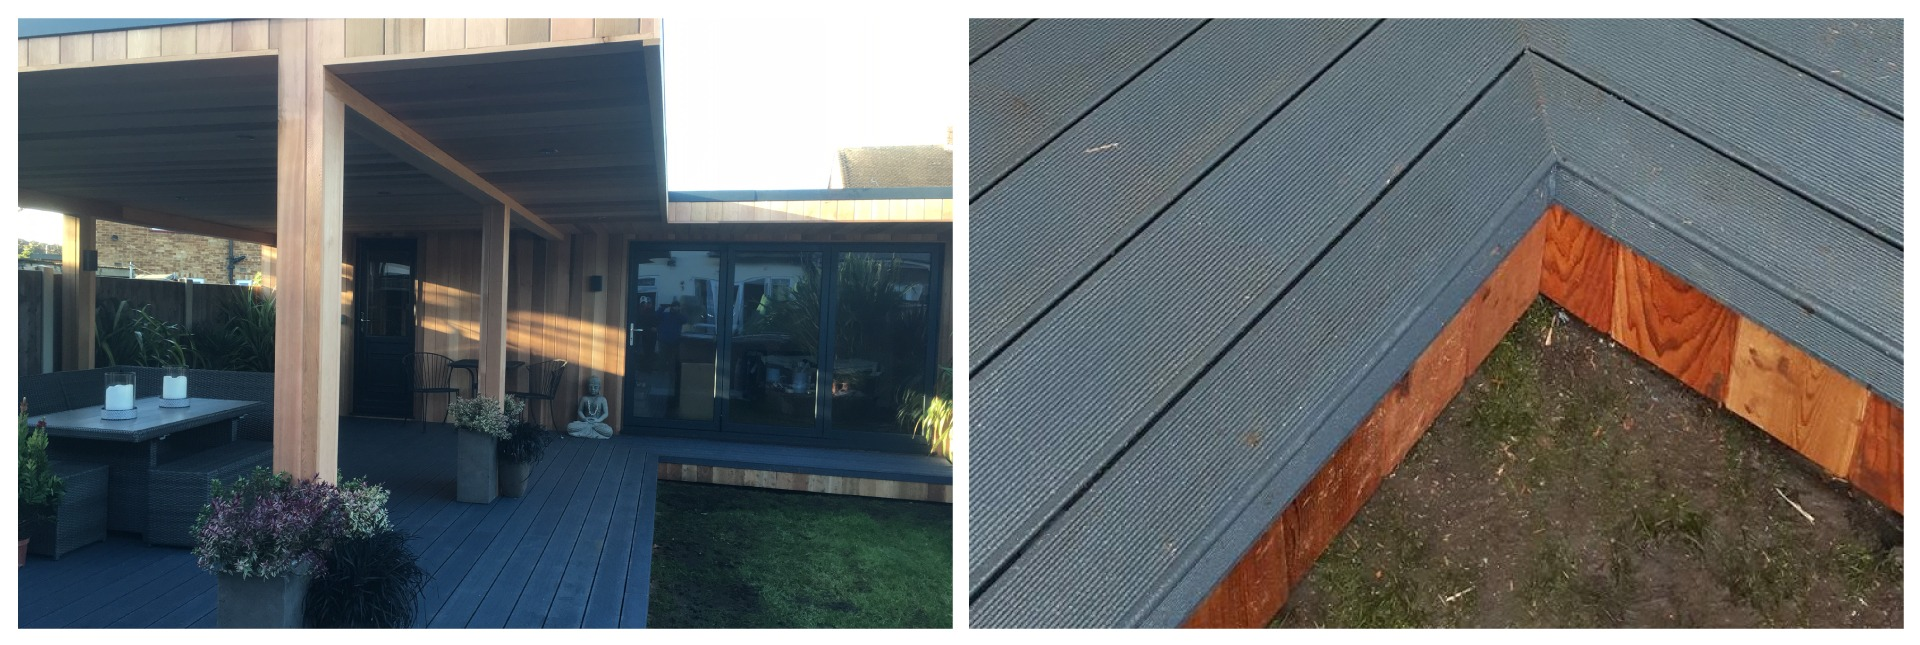 garden room with large decking and closeup of decking